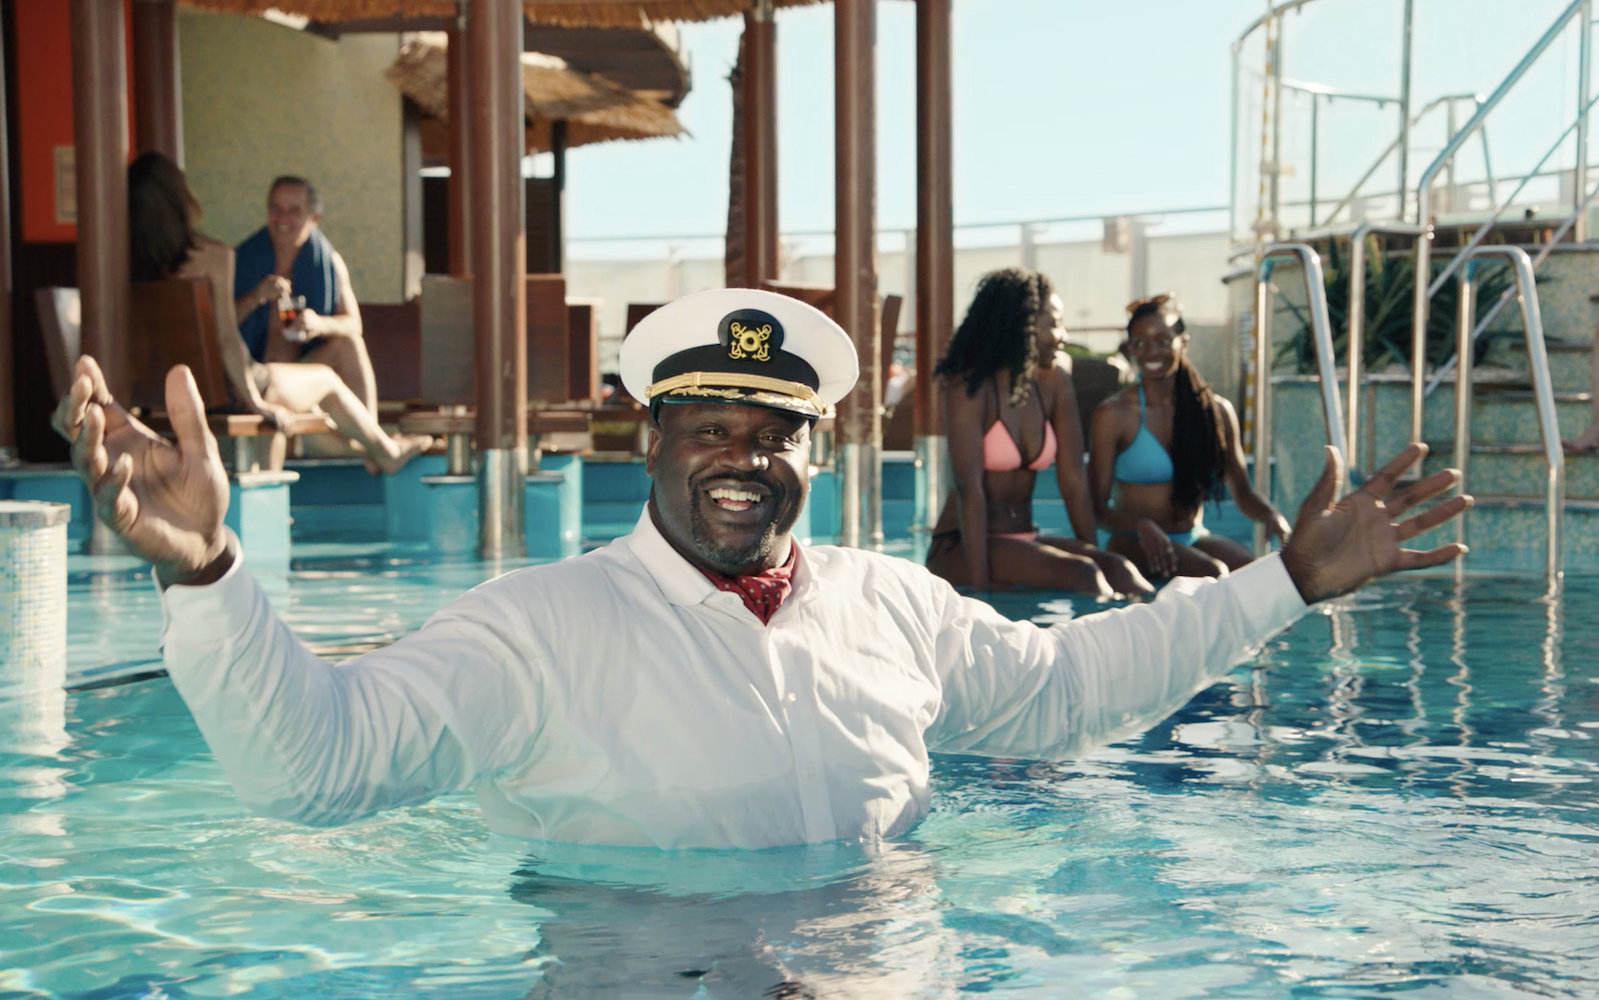 Former NBA star Shaq in a Carnival Cruise pool